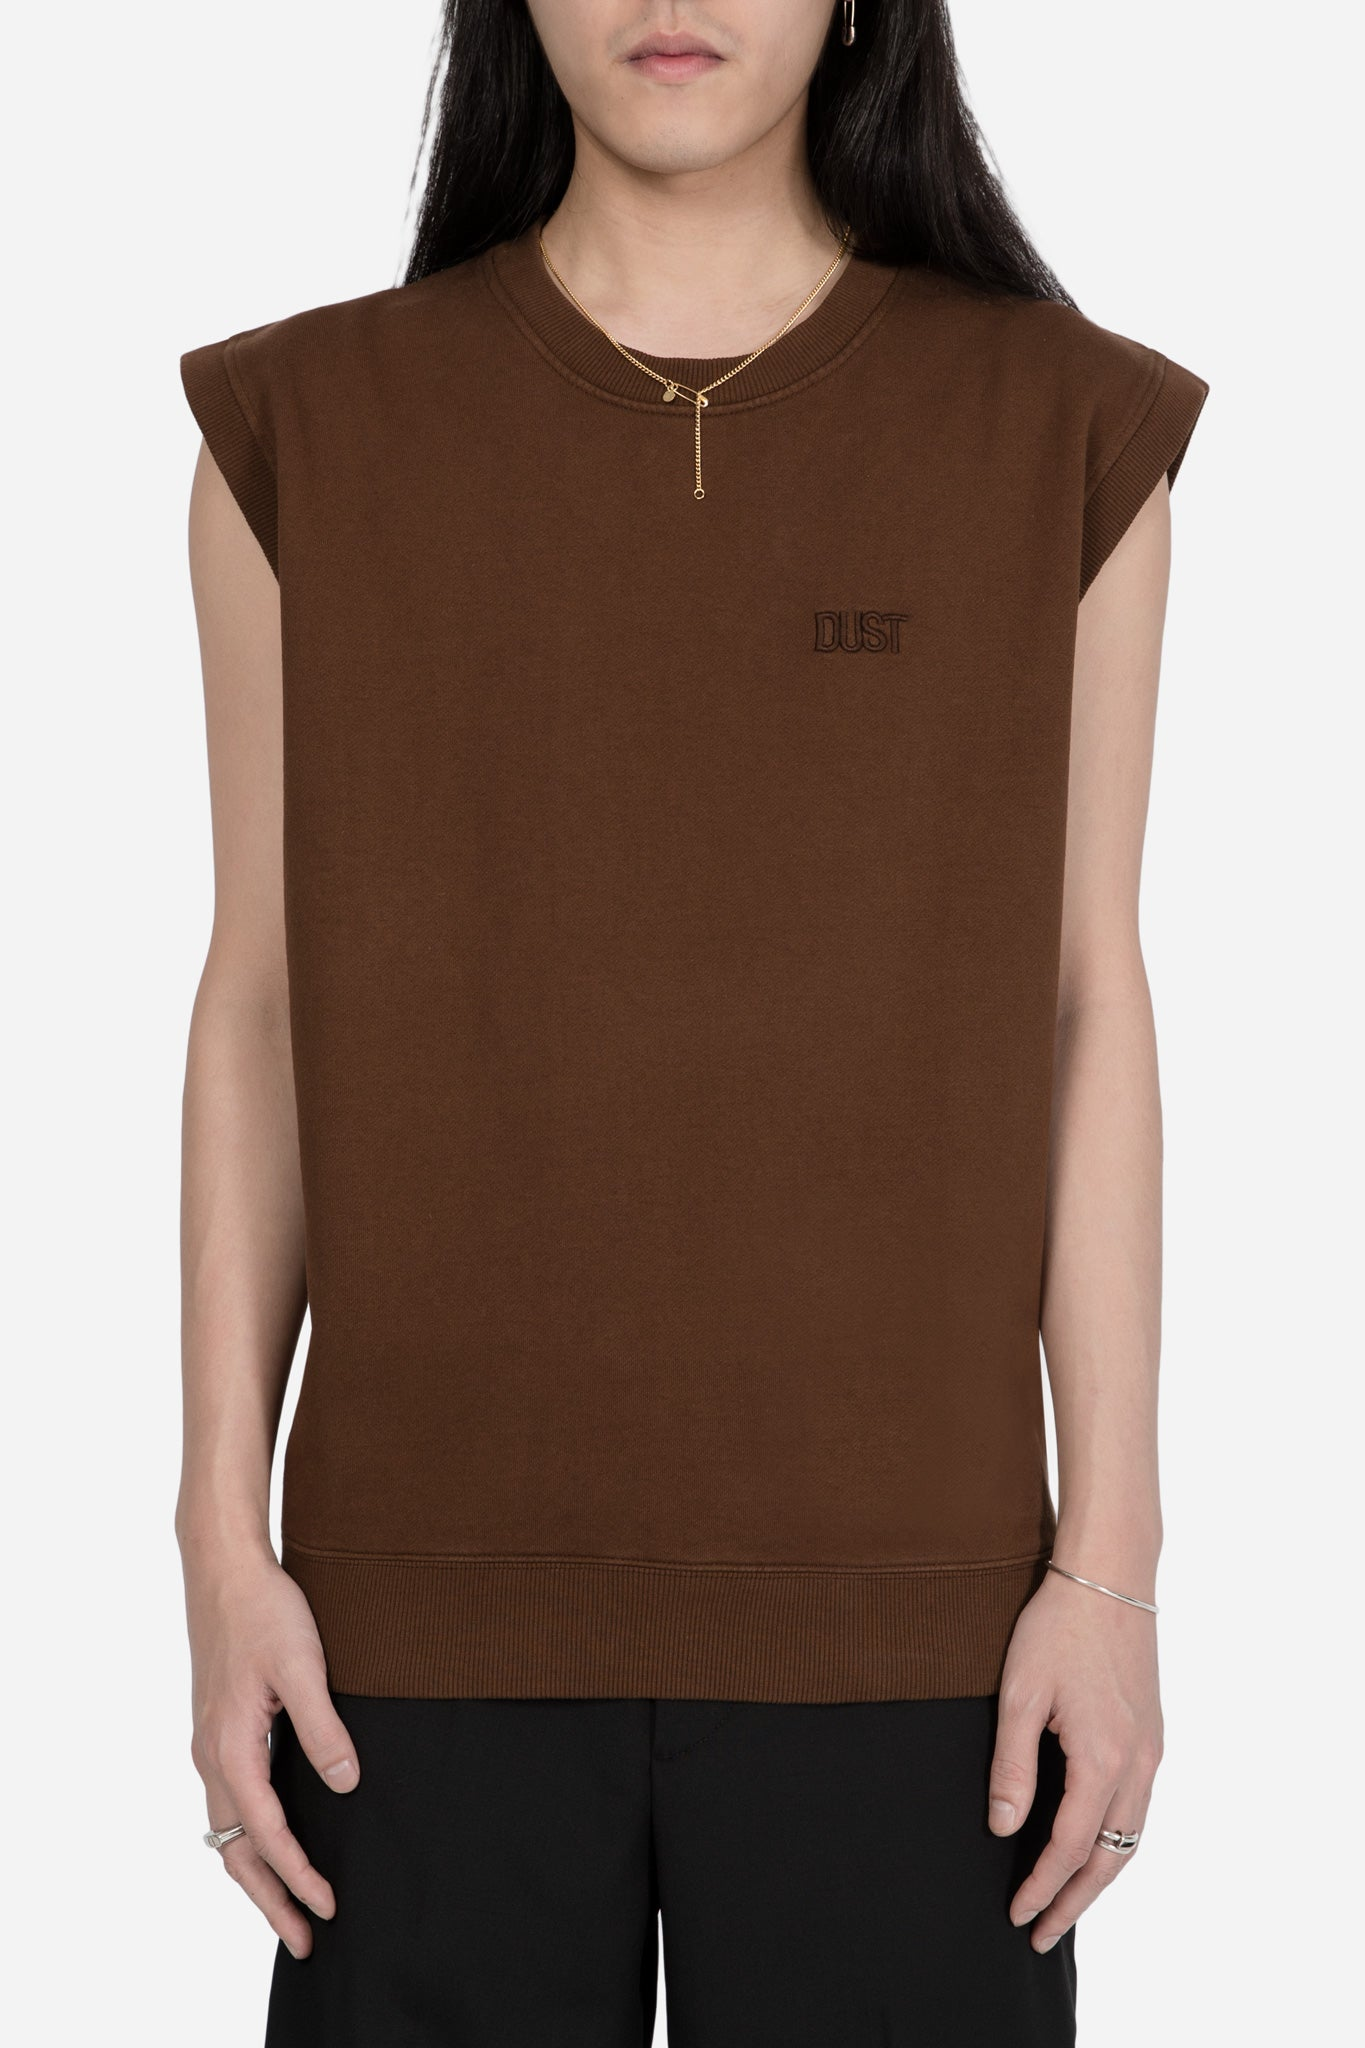 STYLE 5 OPT 1 Sweatshirt Vest Brown